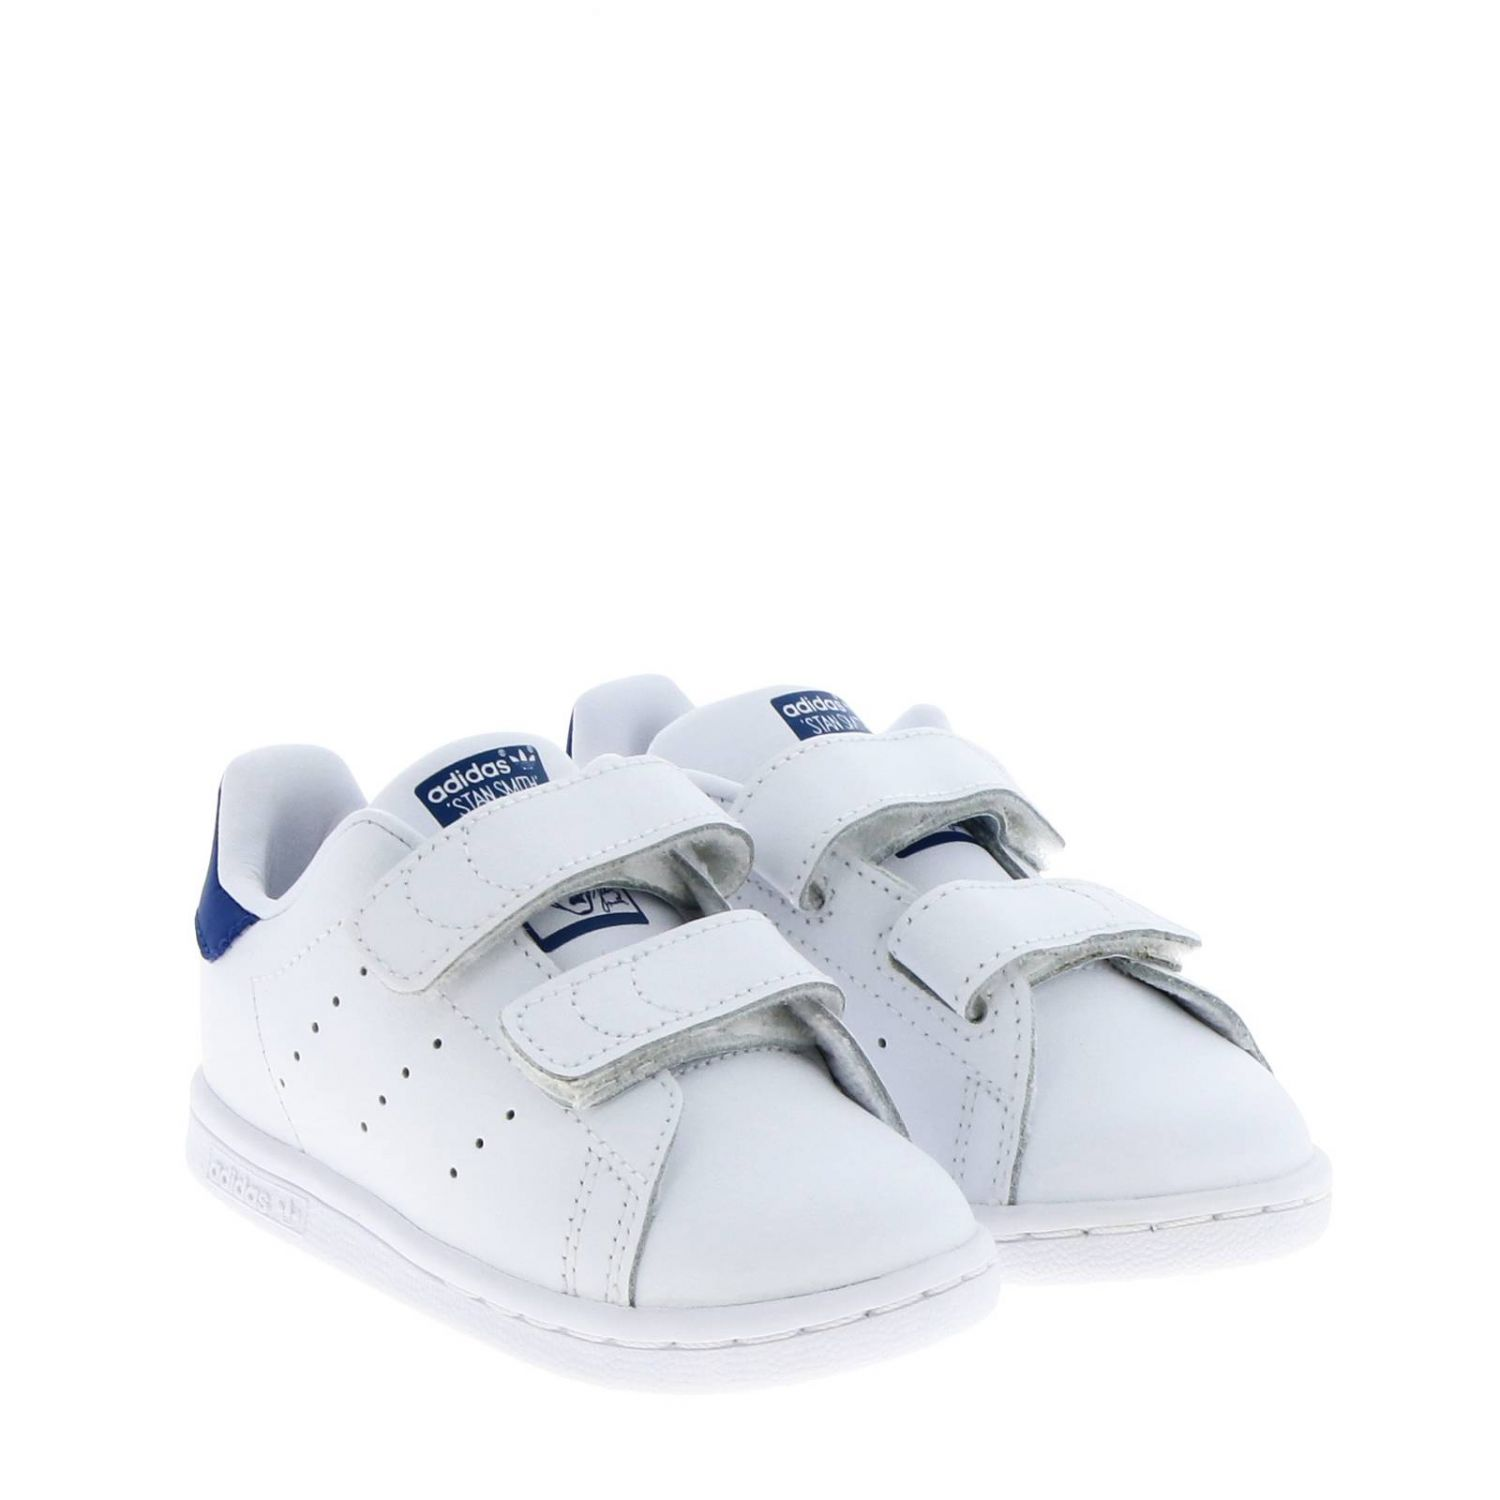 Shoes Adidas Originals: Stan Smith Adidas Originals Sneakers in smooth leather with colored heel white 2